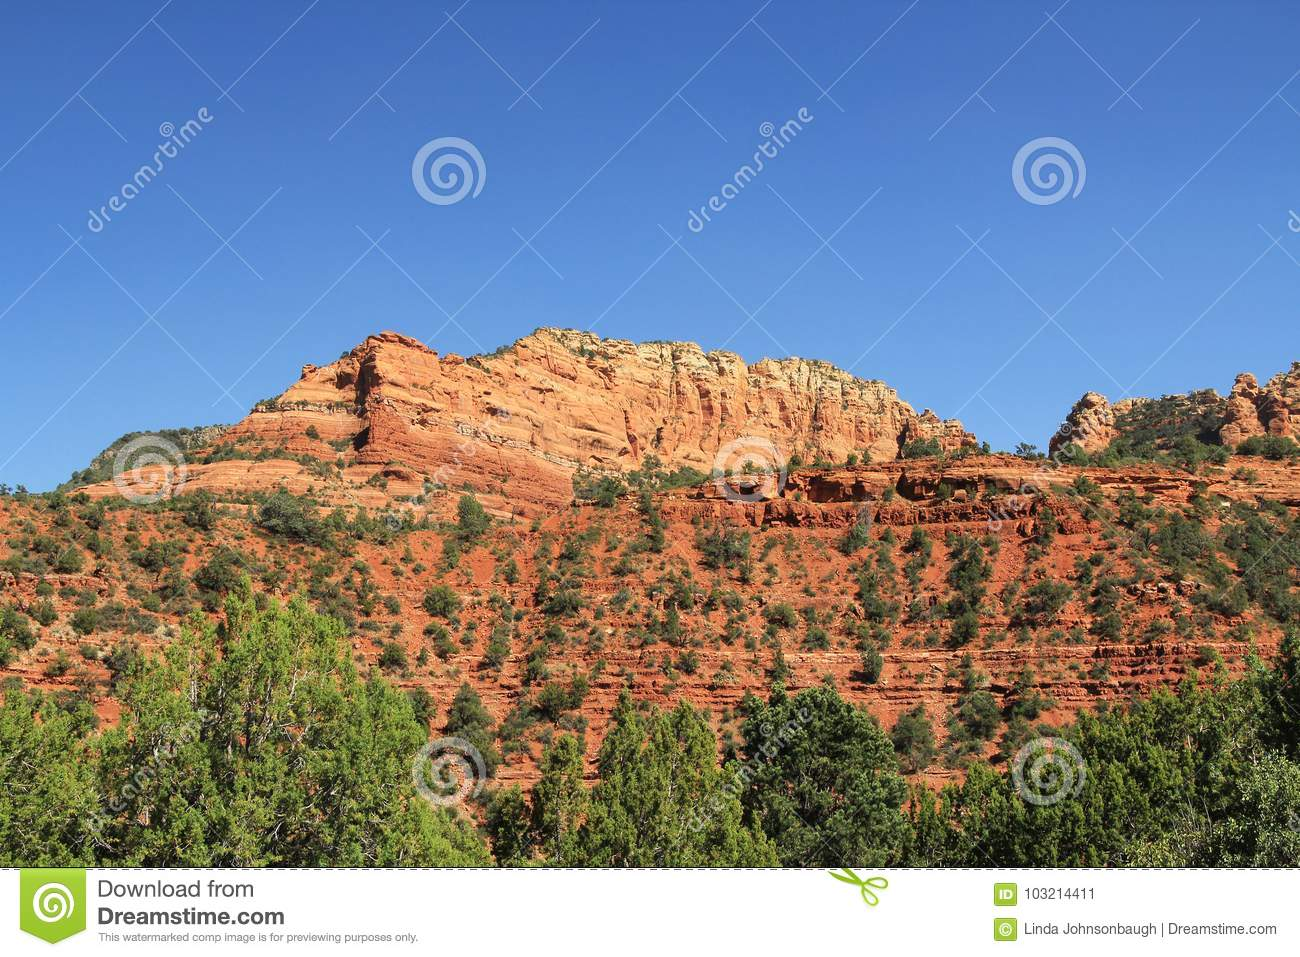 Rode Rotsvorming in Sedona Arizona